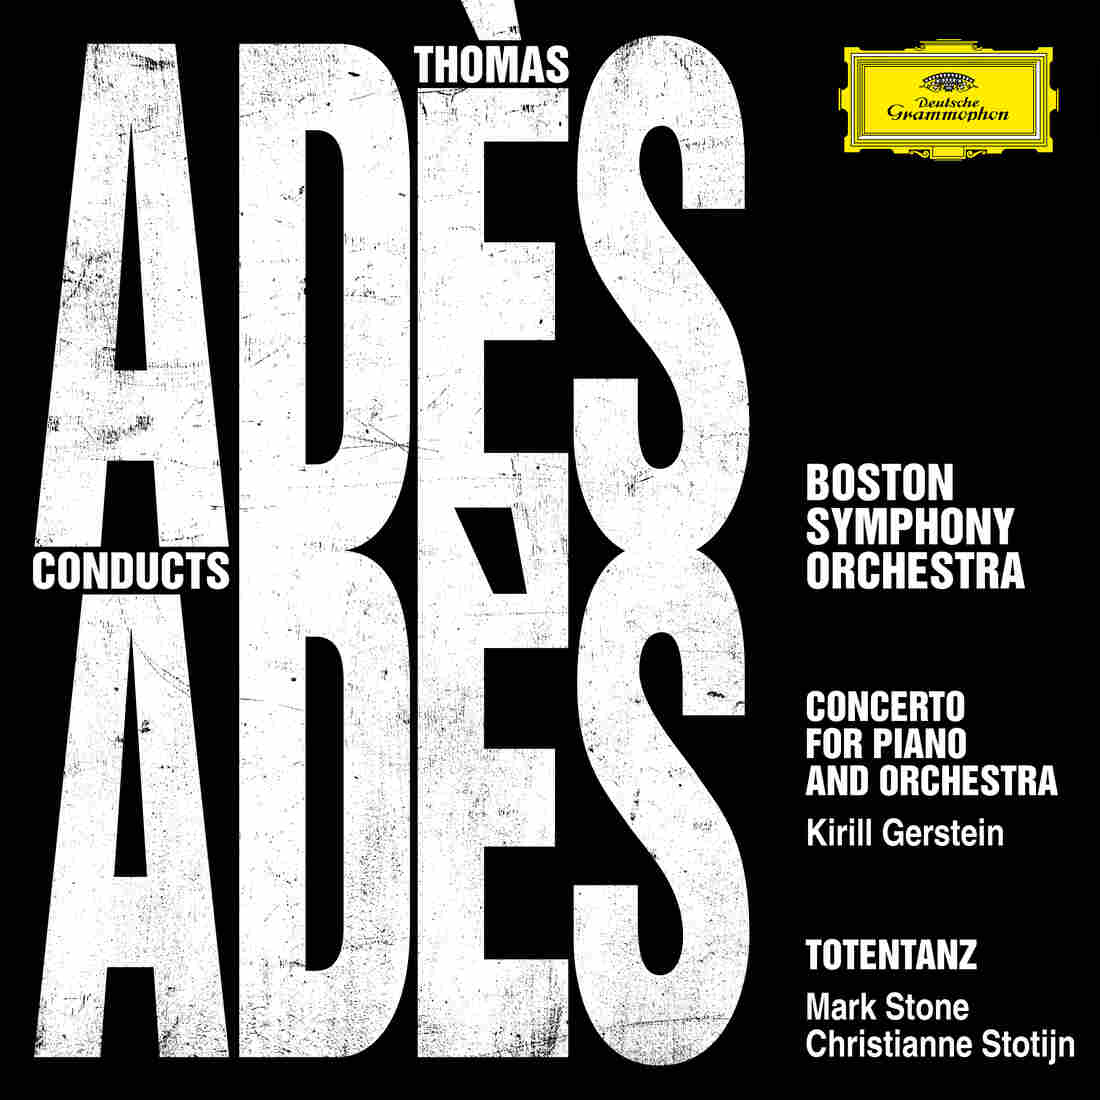 Boston Symphony Orchestra, Adès Conducts Adès